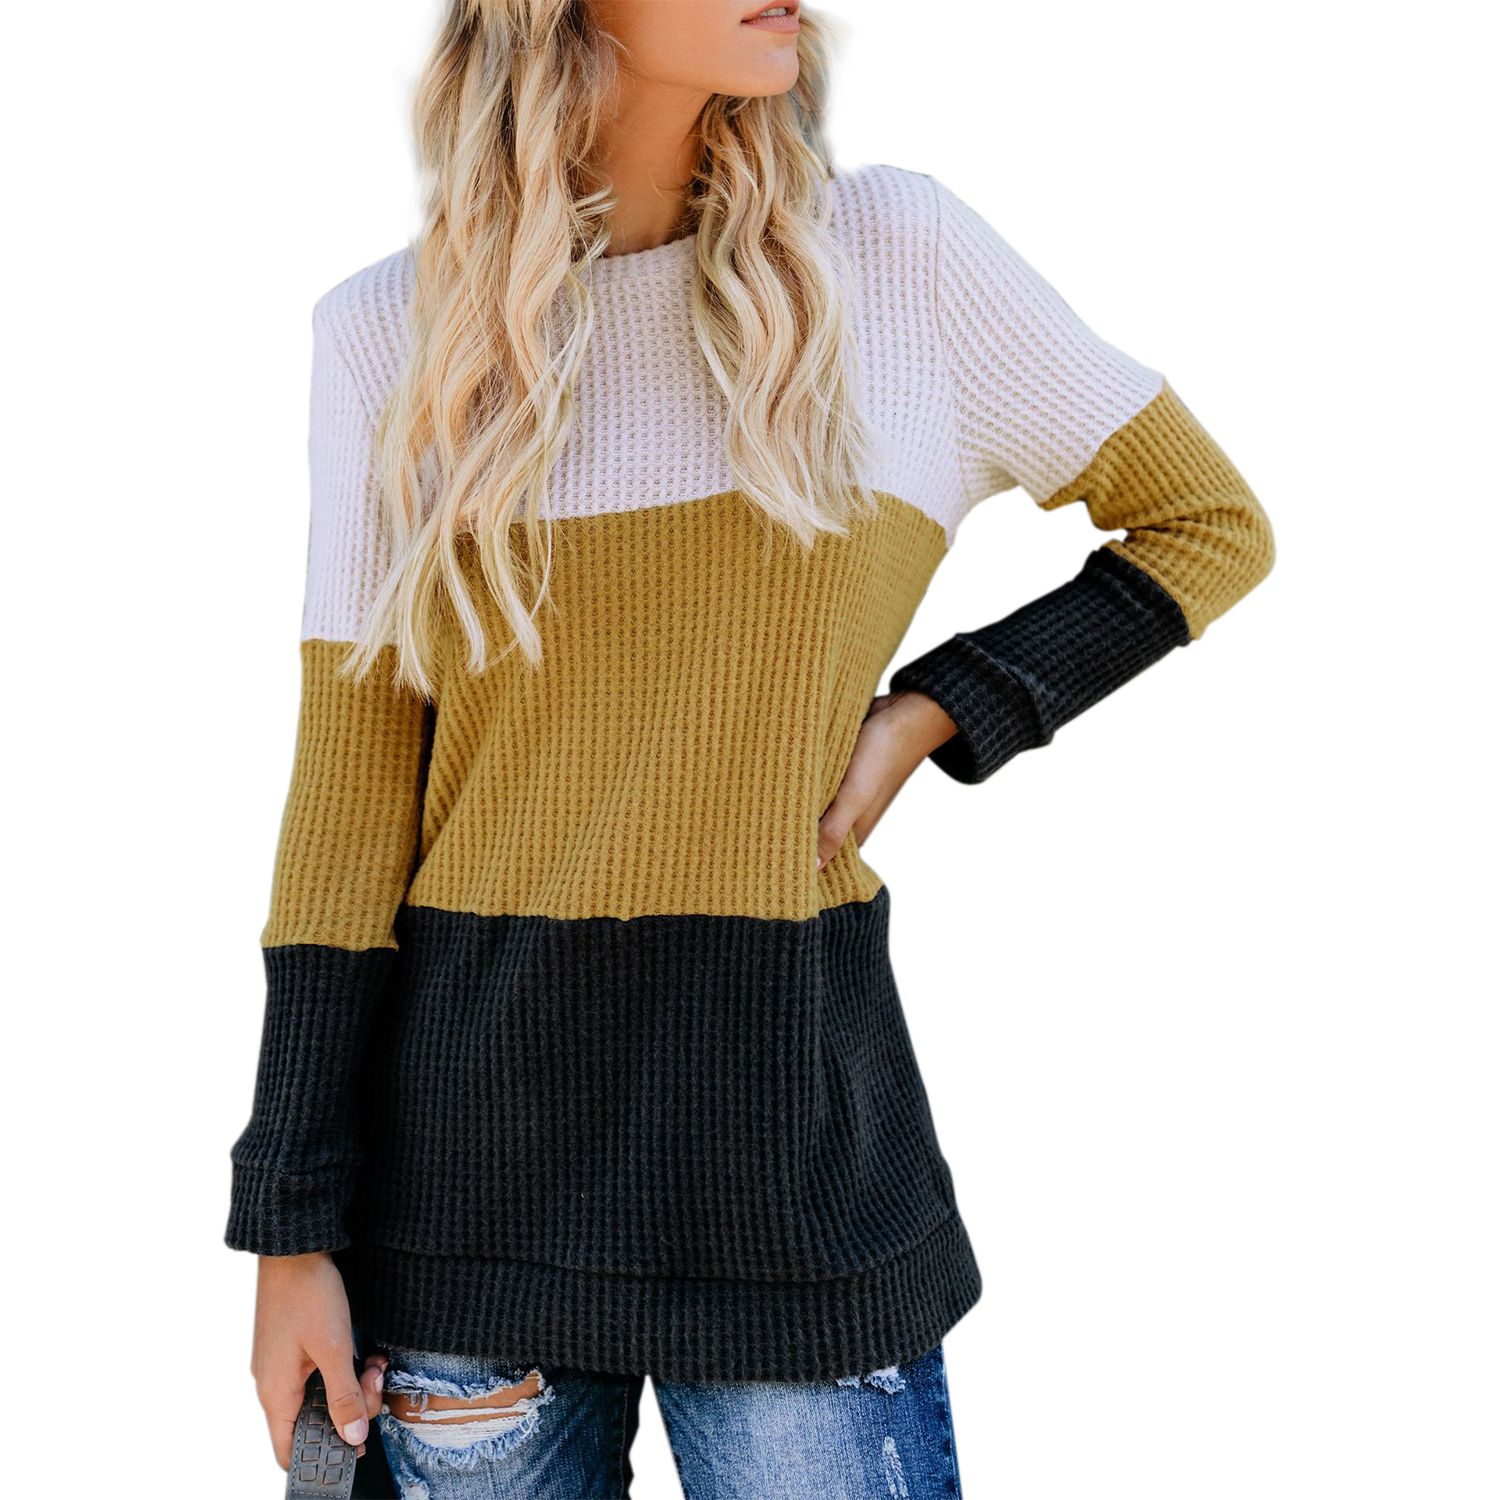 Women Autumn Winter Fashion O Neck Colorblock Knitted Sweater Ladies Casual Long Sleeve  Pullover Jumper Tops